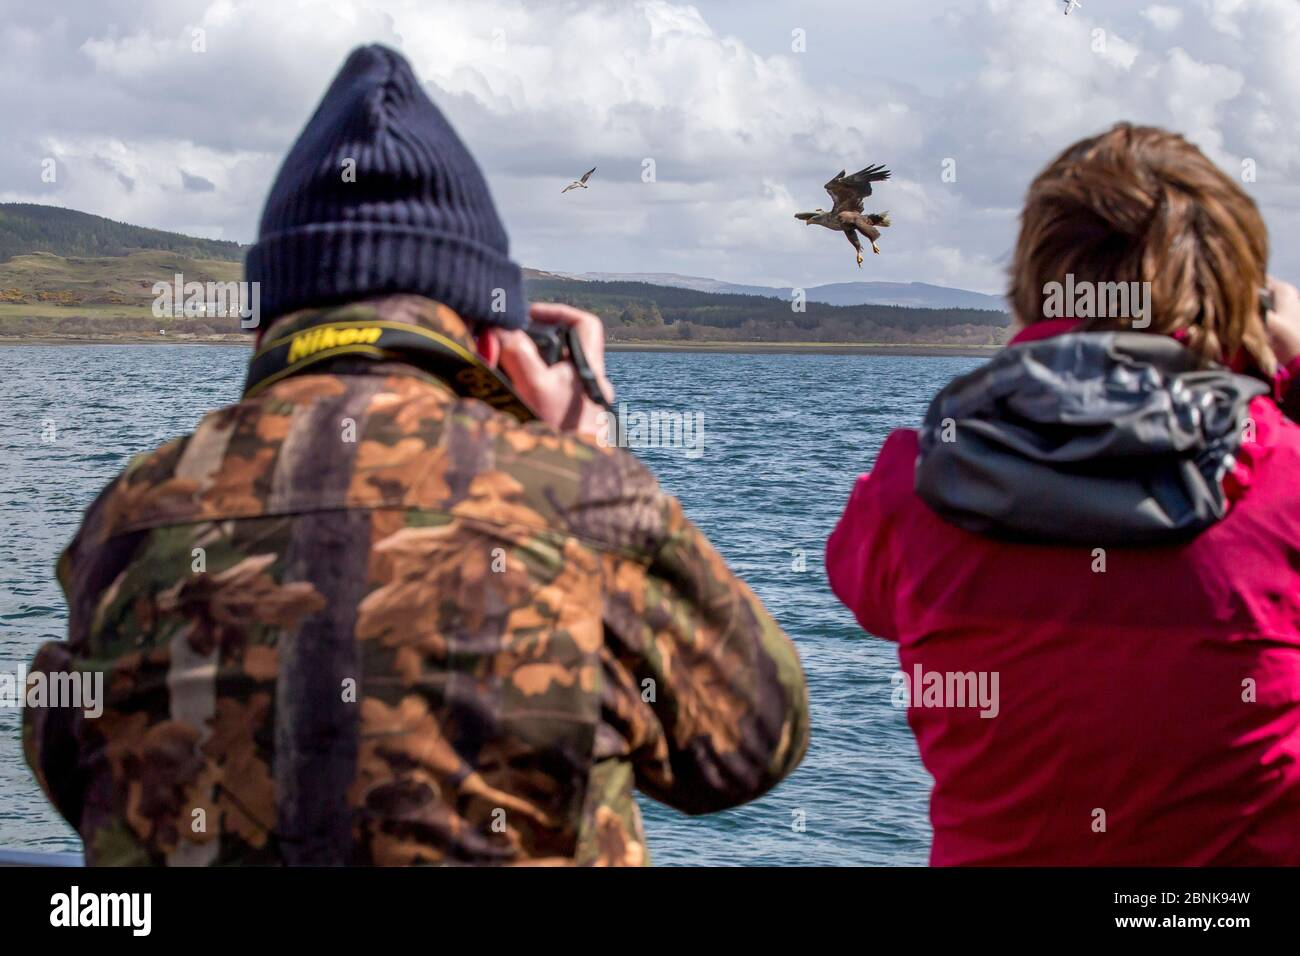 Man and woman rear view, photographing White-tailed sea eagle (Haliaeetus albicilla) taking fish, Isle of Mull, Argyll and Bute, Scotland, UK, May. Stock Photo